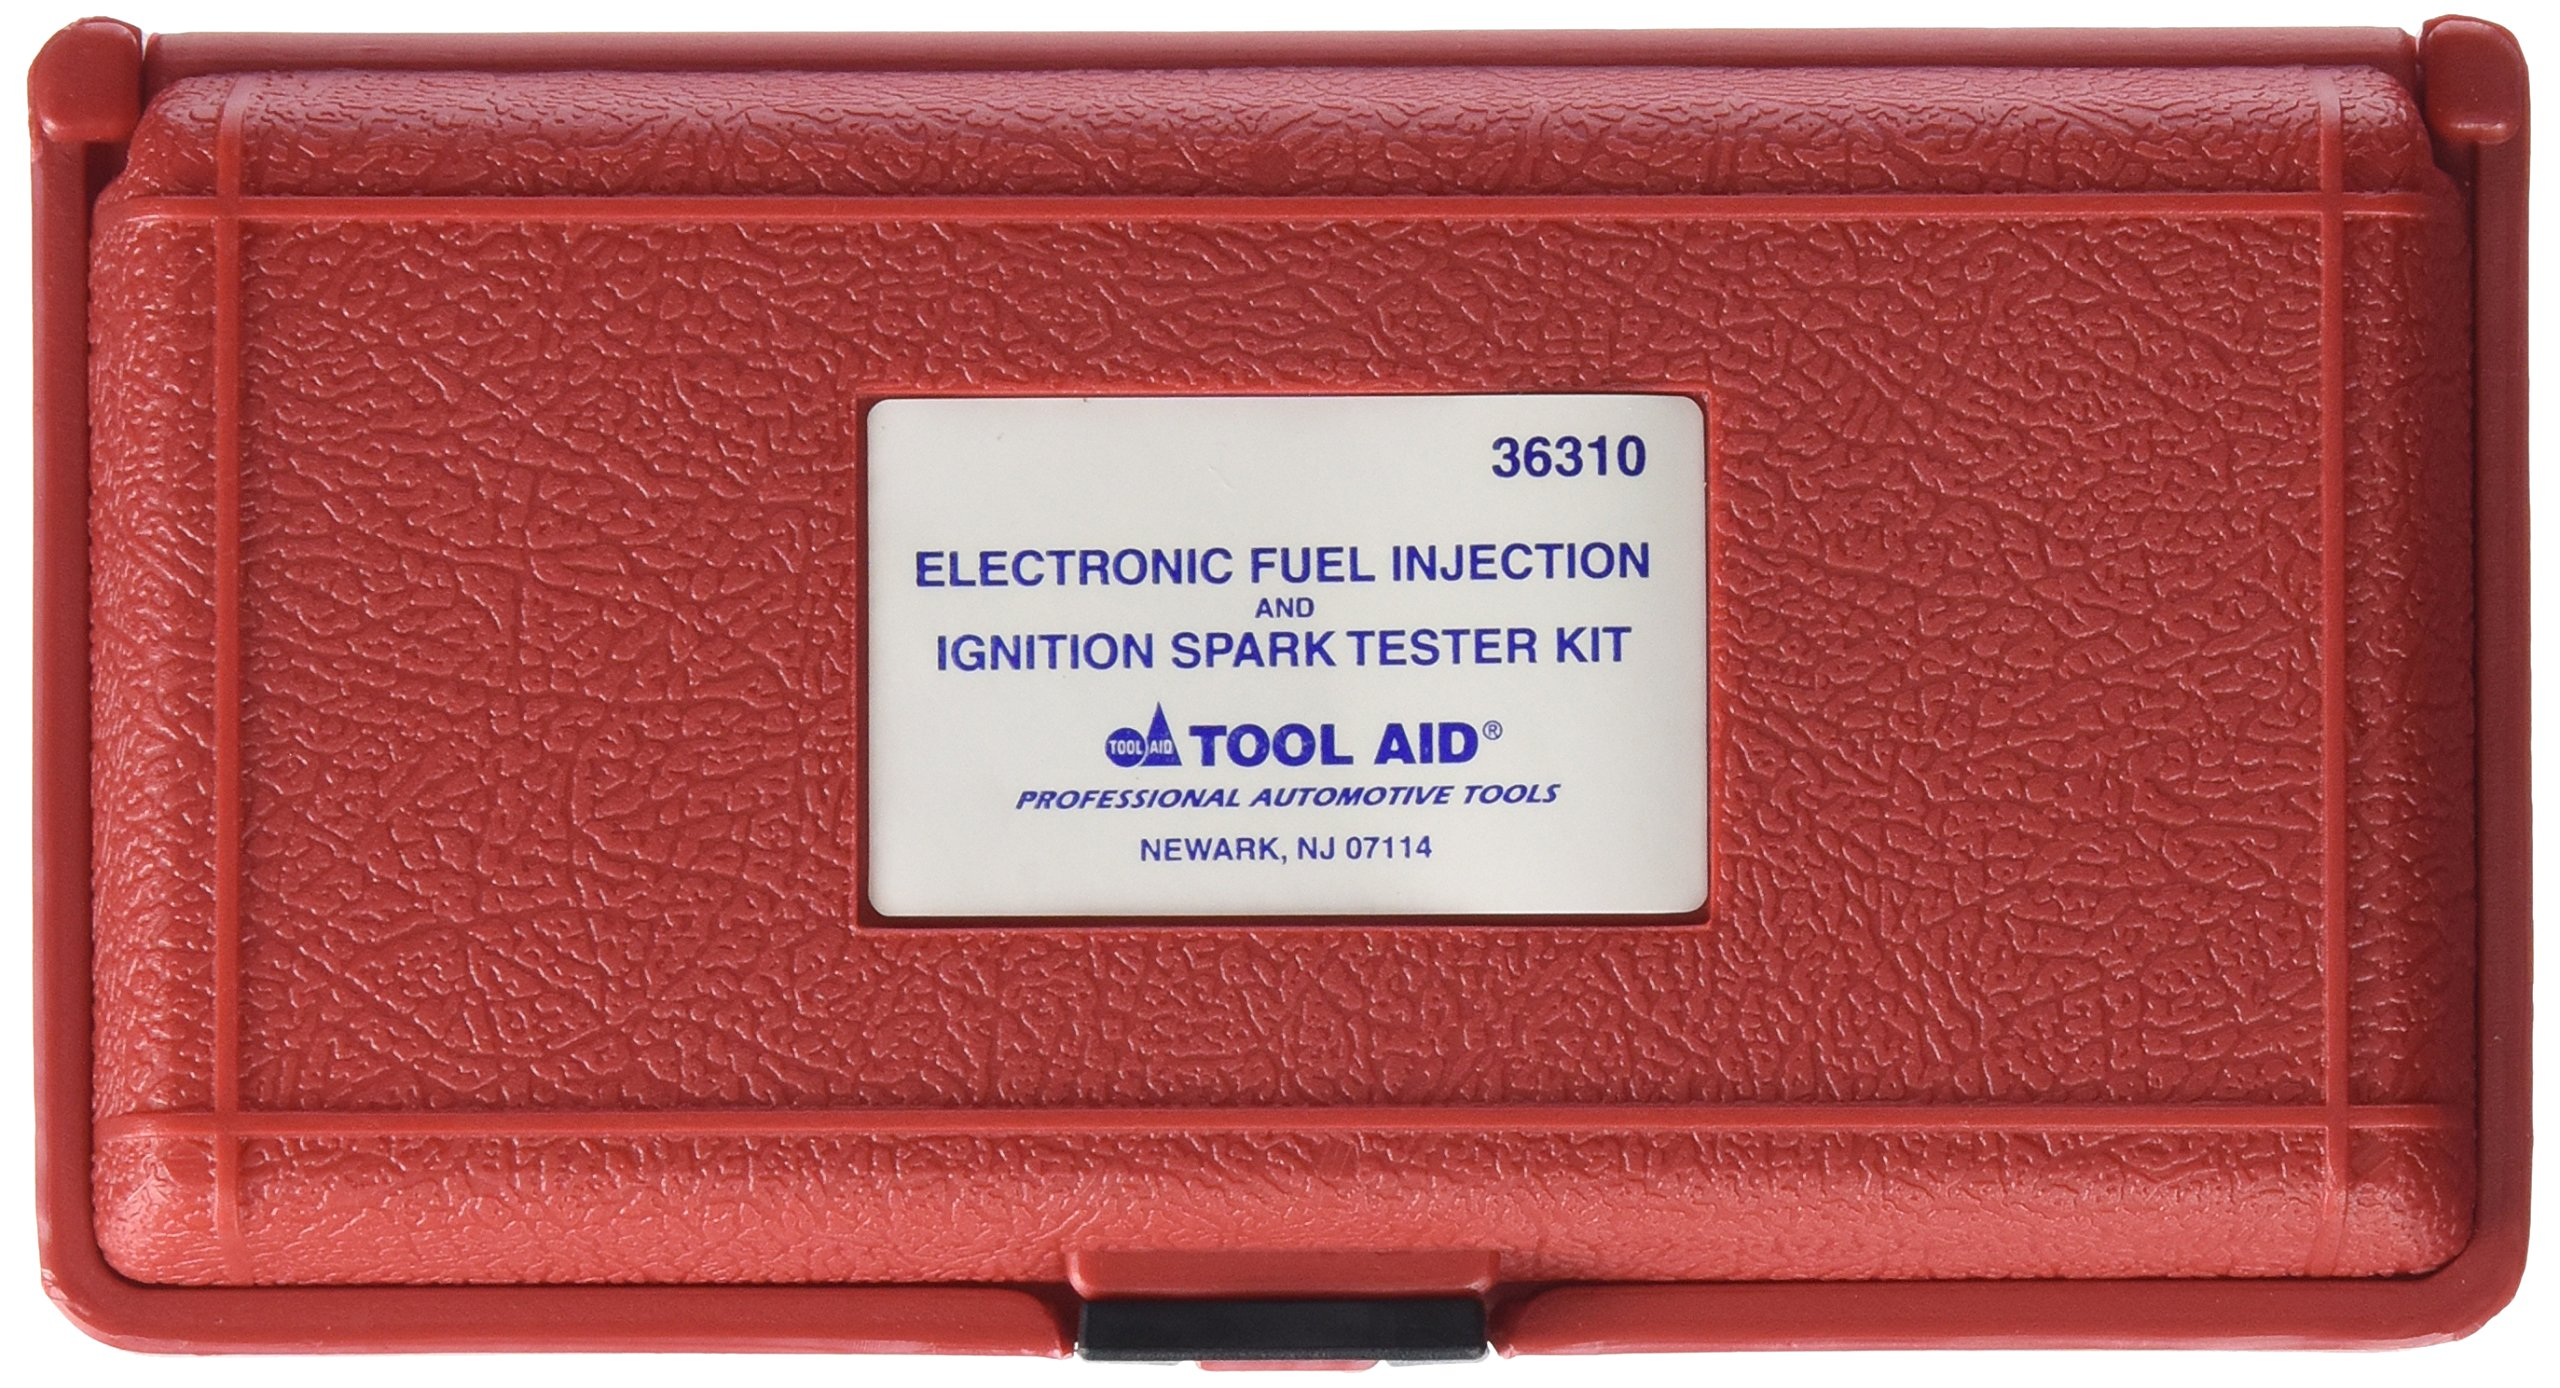 Tool Aid S&G 36310 Electronic Fuel Injection and Ignition Spark Tester Kit